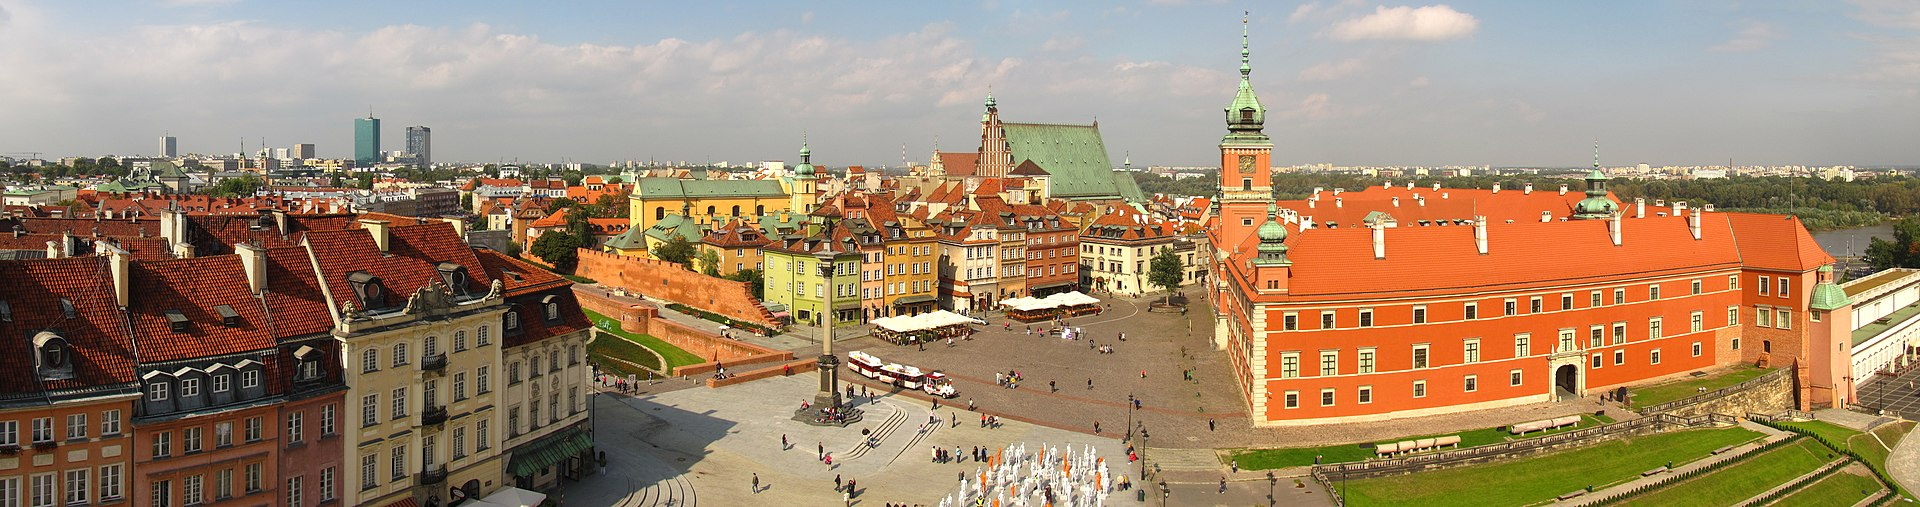 Warsaw Castle Square Panorama 2010.jpg